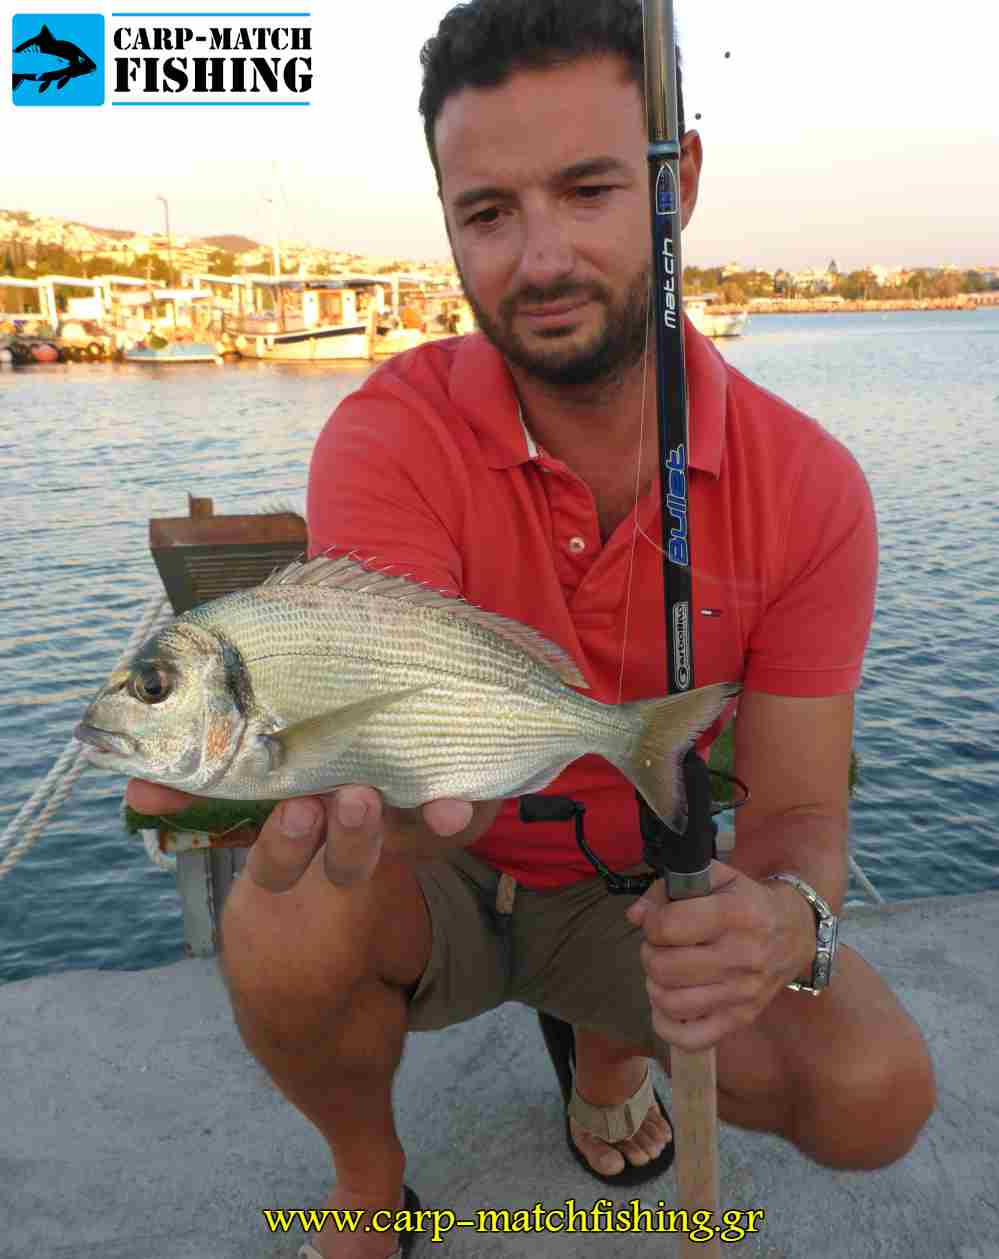 tsipoura mikri match fishing sfaltos carpmatchfishing